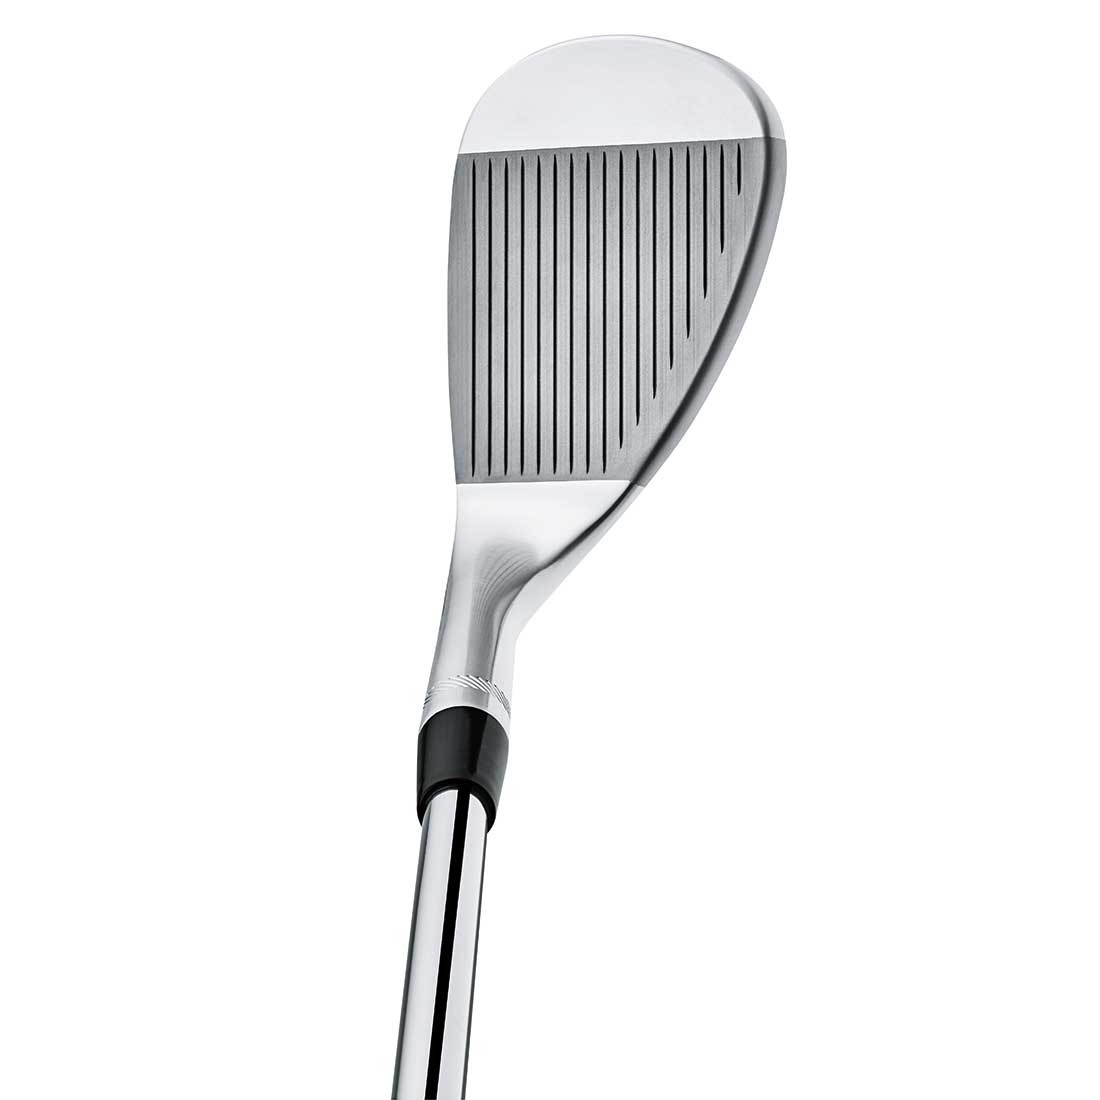 Titleist Vokey SM7 Tour Steel Wedge